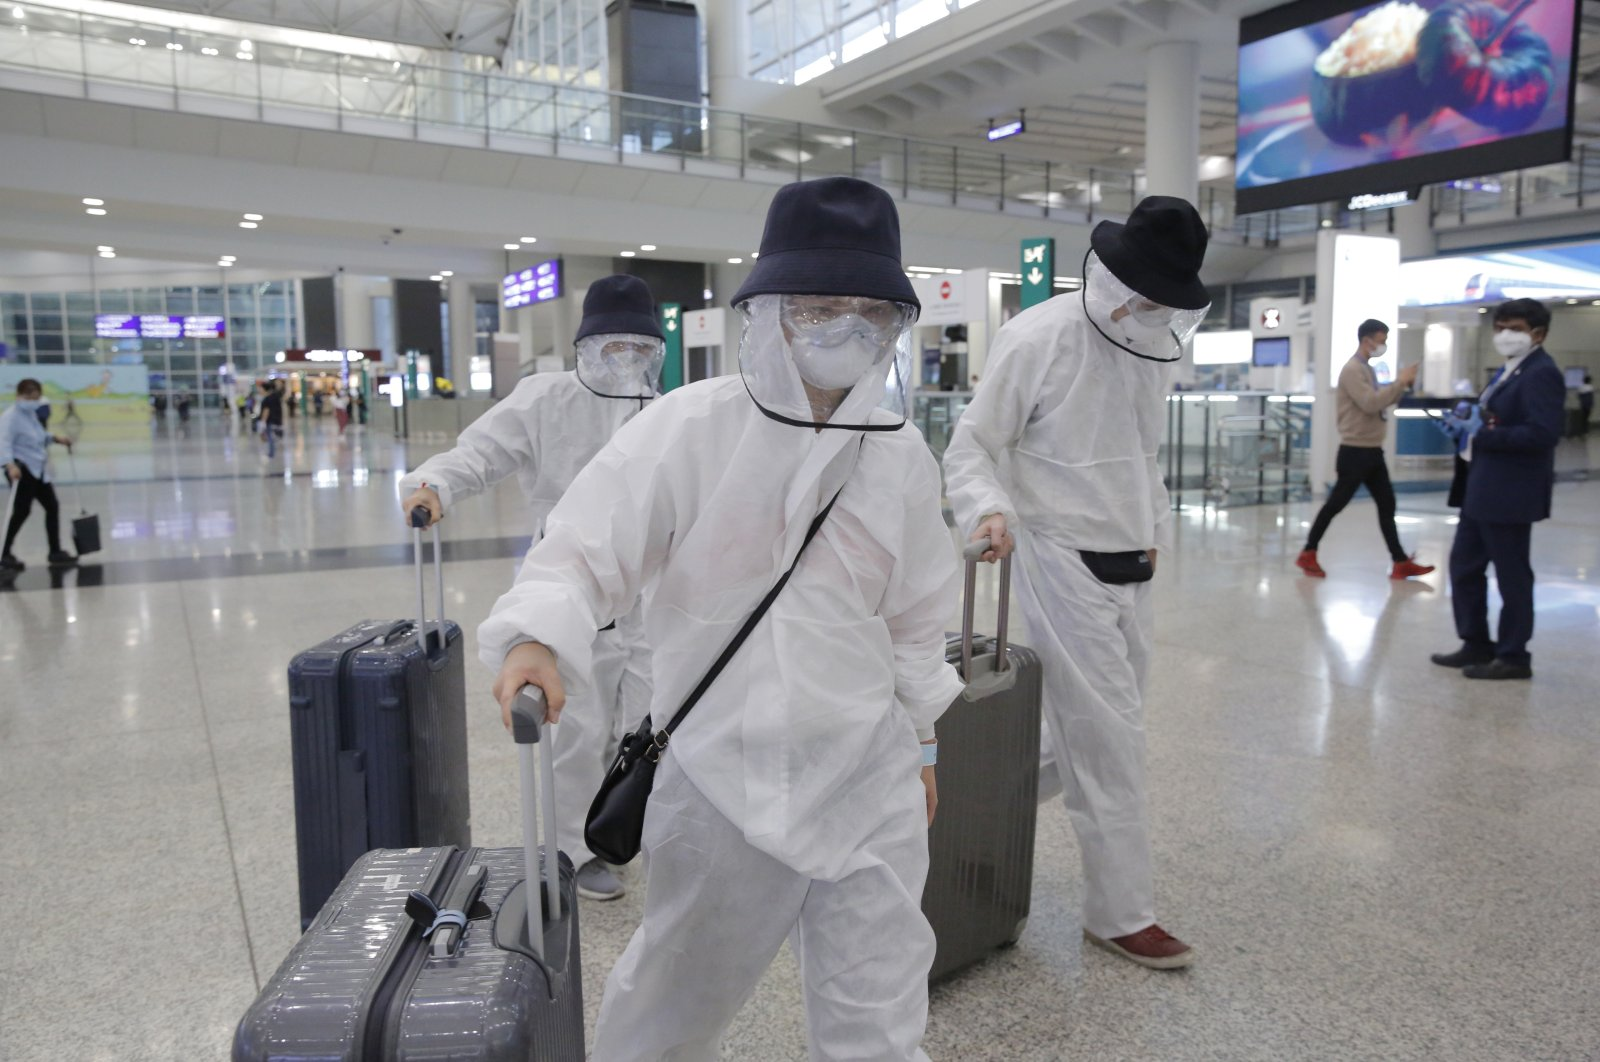 Passengers wear suits and face masks to protect against the coronavirus as they arrive at the Hong Kong airport, March 23, 2020. (AP Photo)